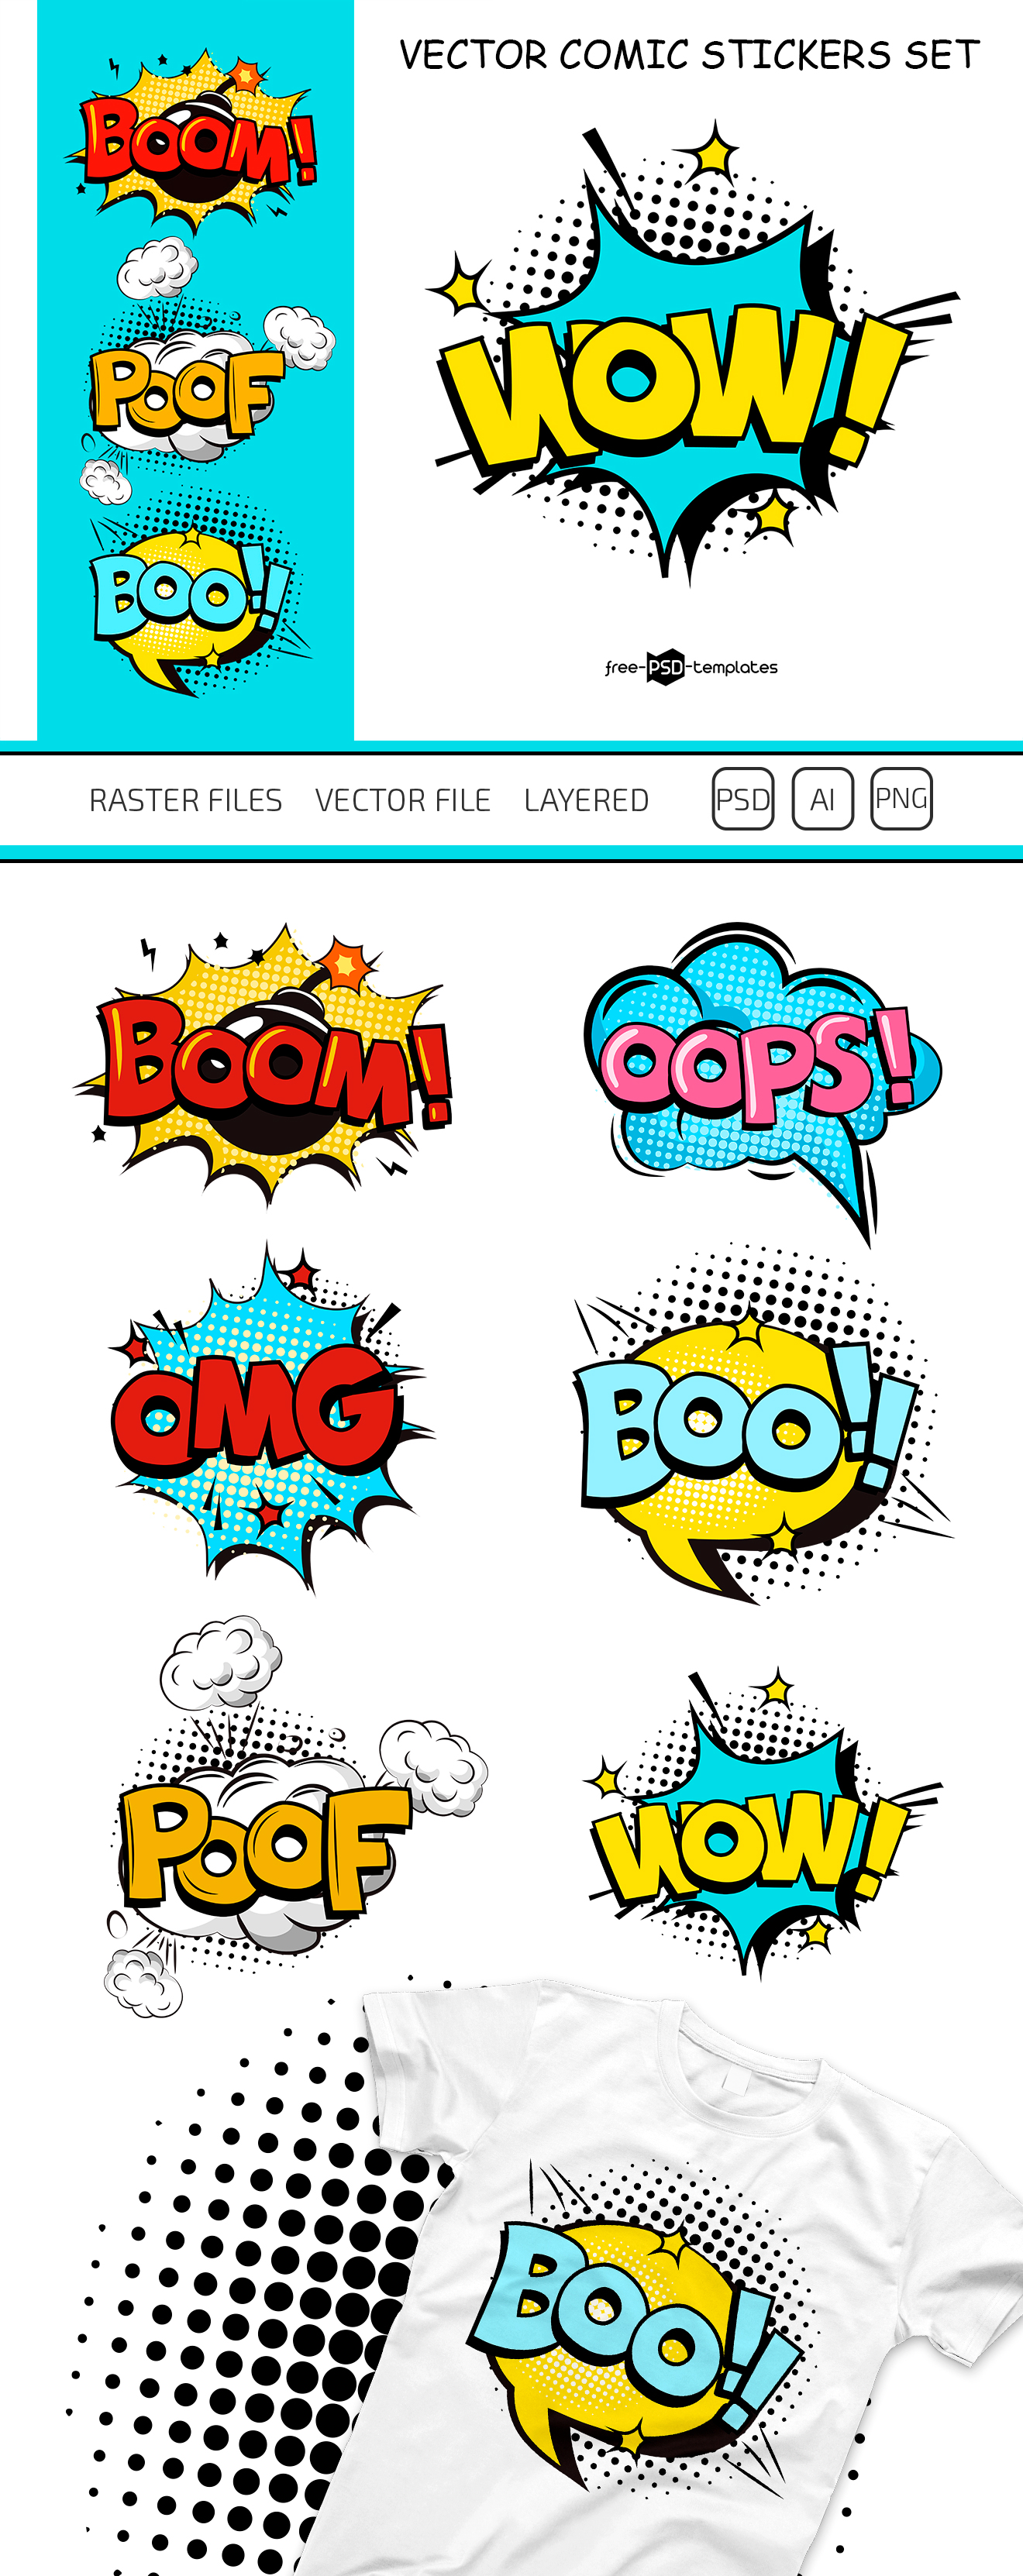 Free Vector Comic Stickers Set | Free PSD Templates